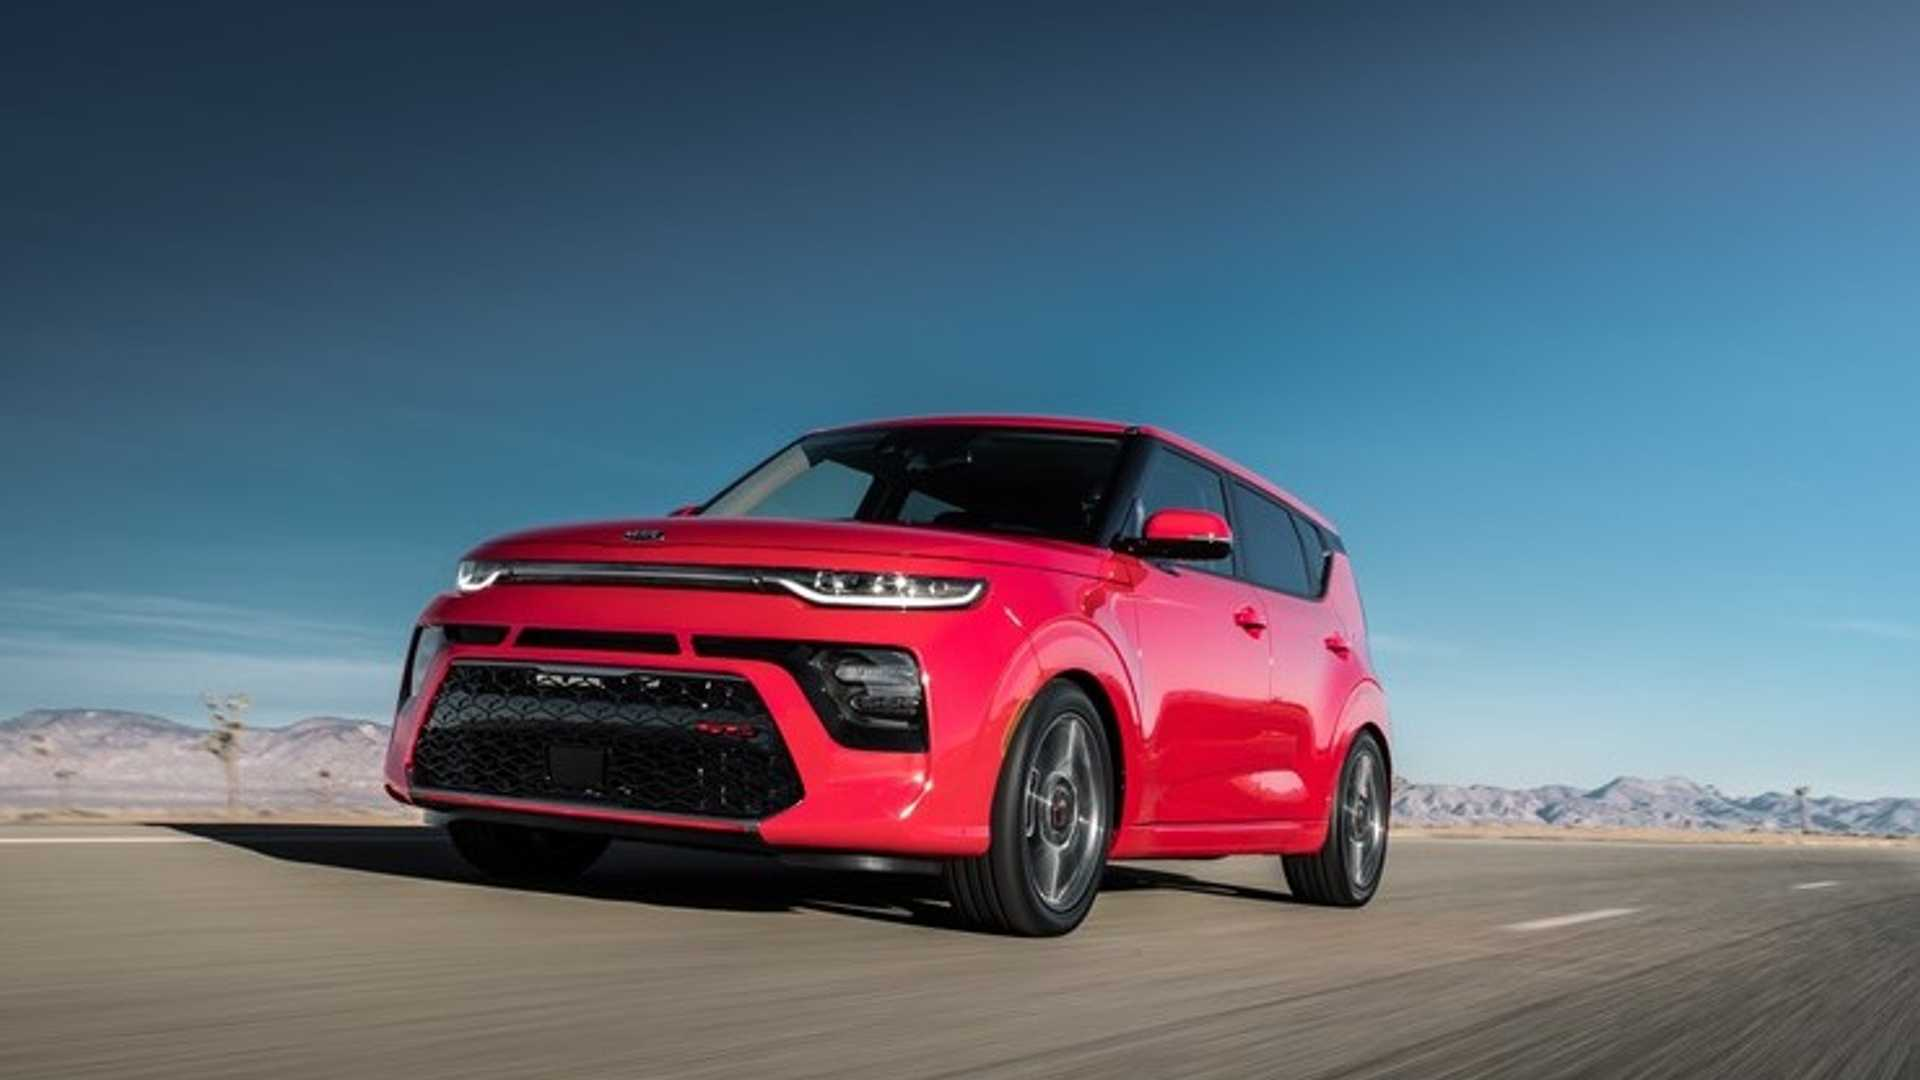 67 The Kia Gt 2020 Price And Release Date